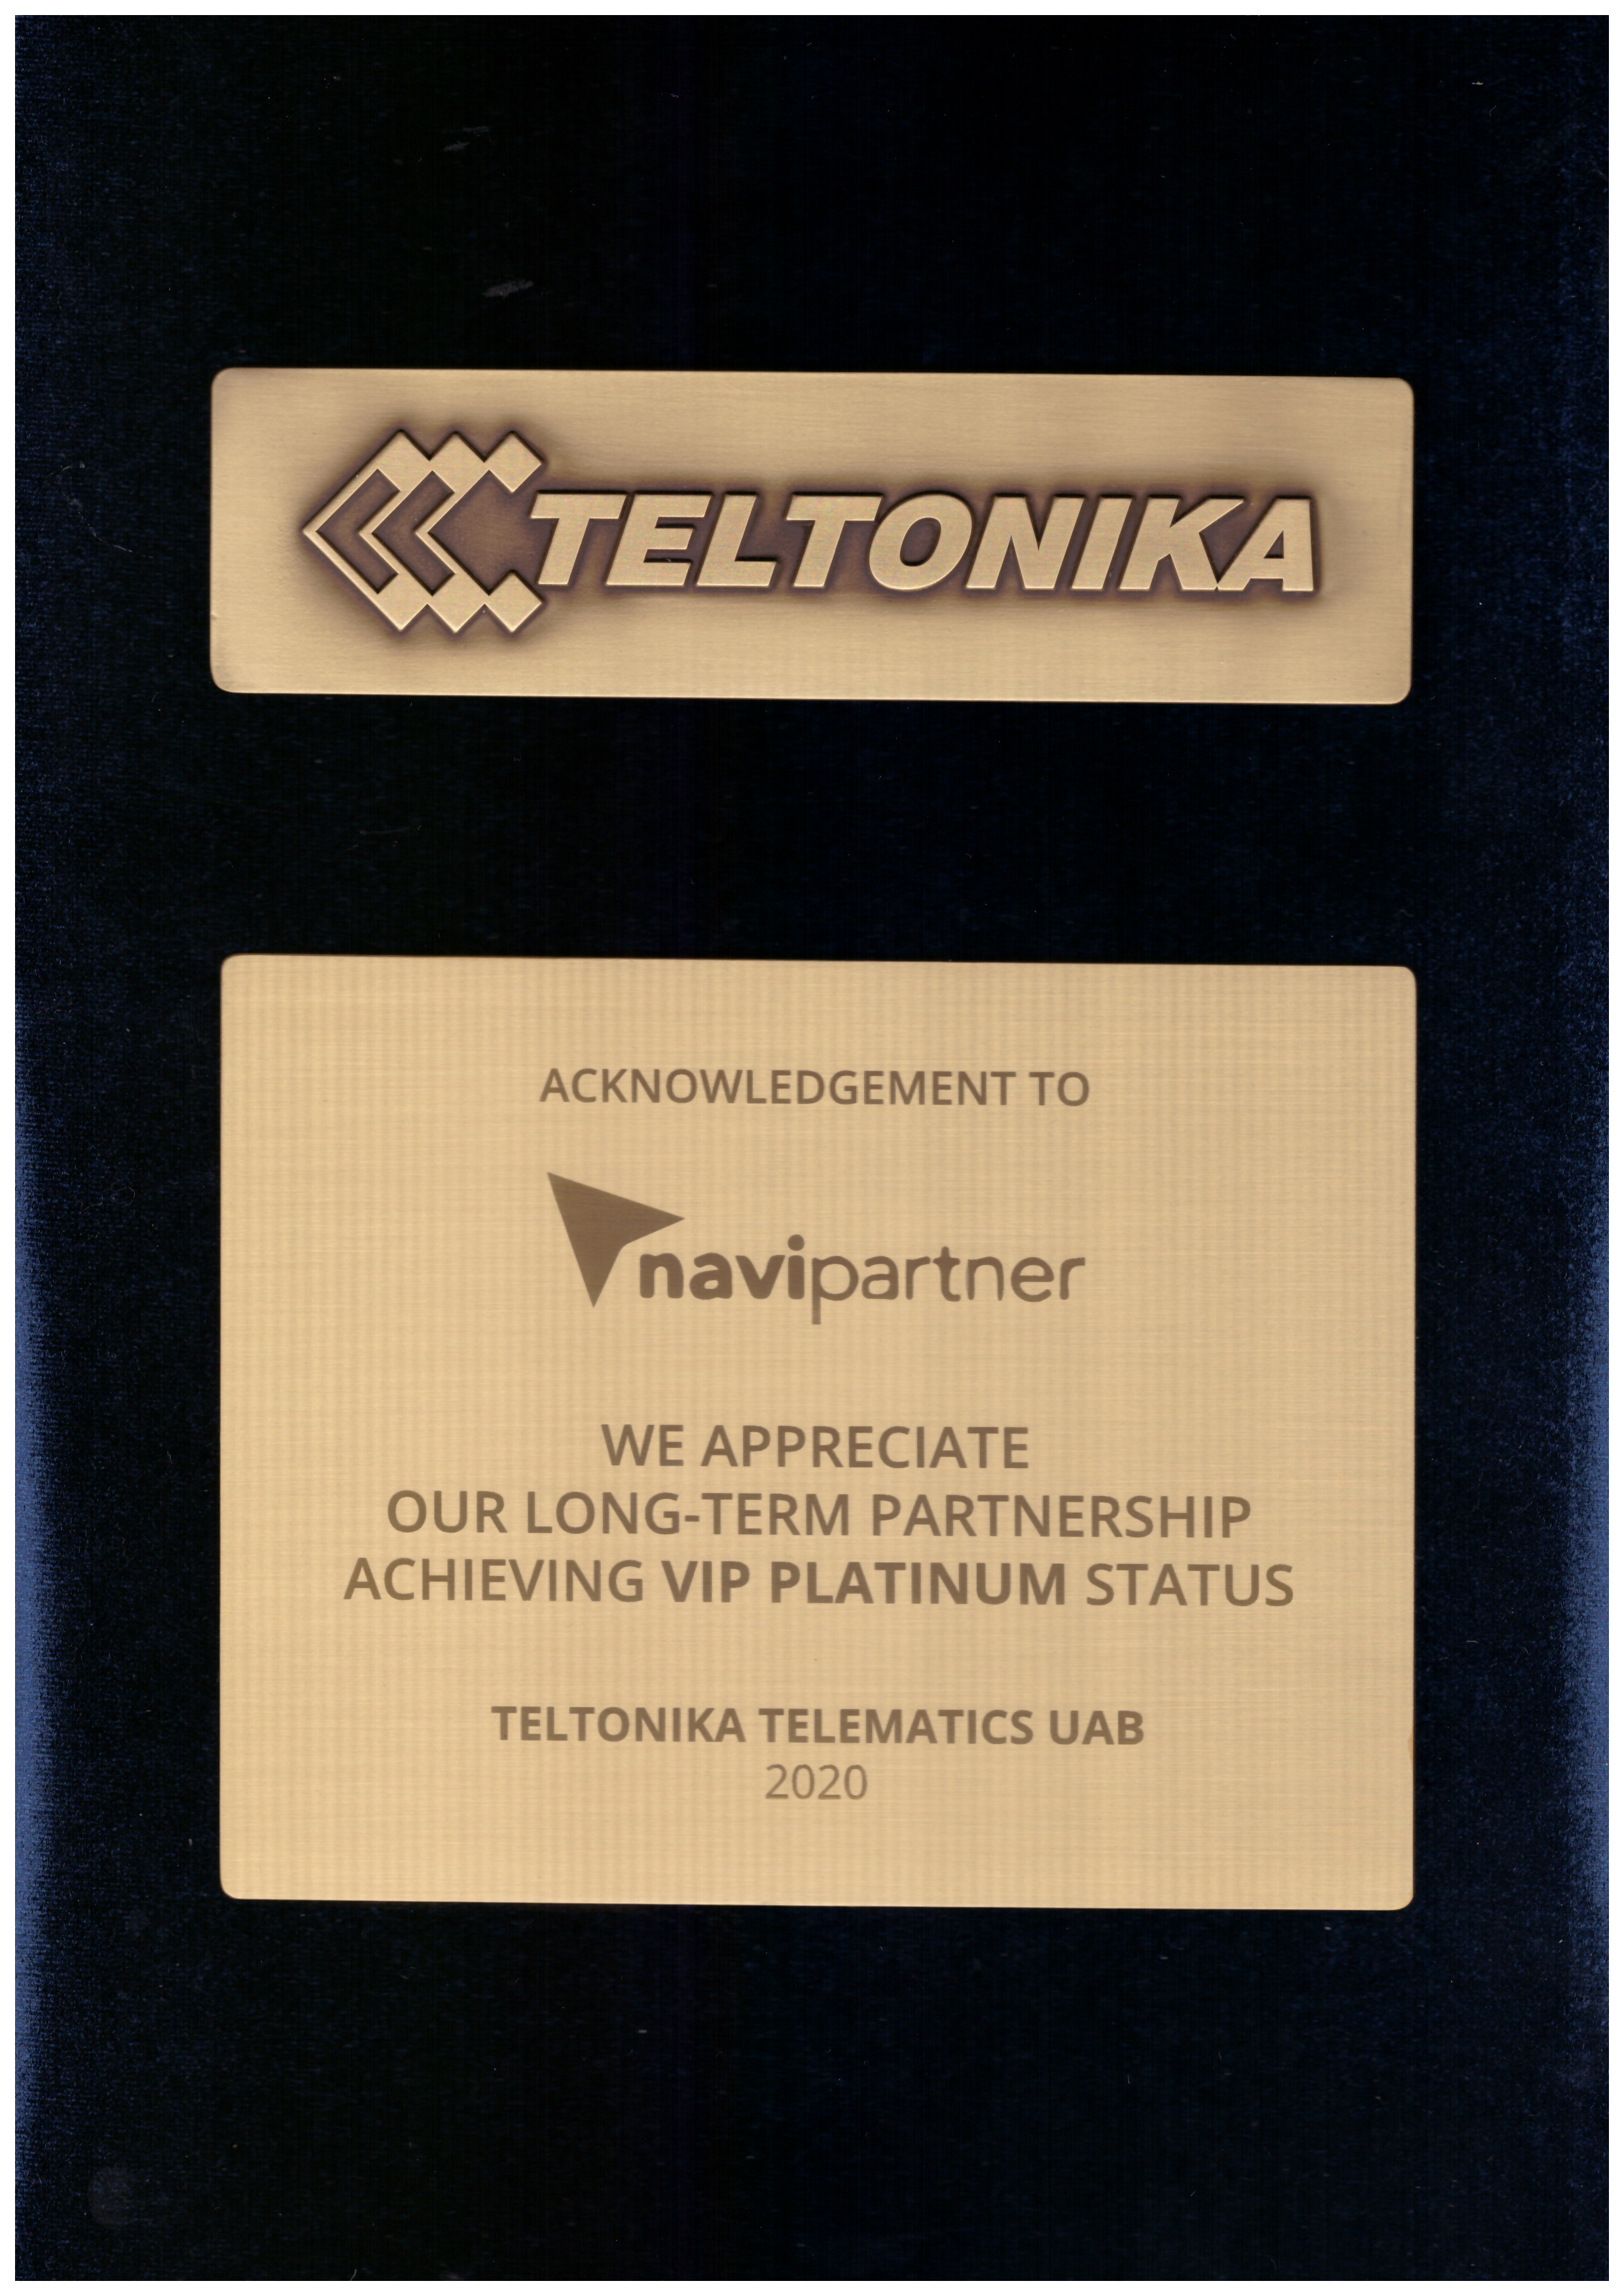 VIP PLATINUM PARTNER